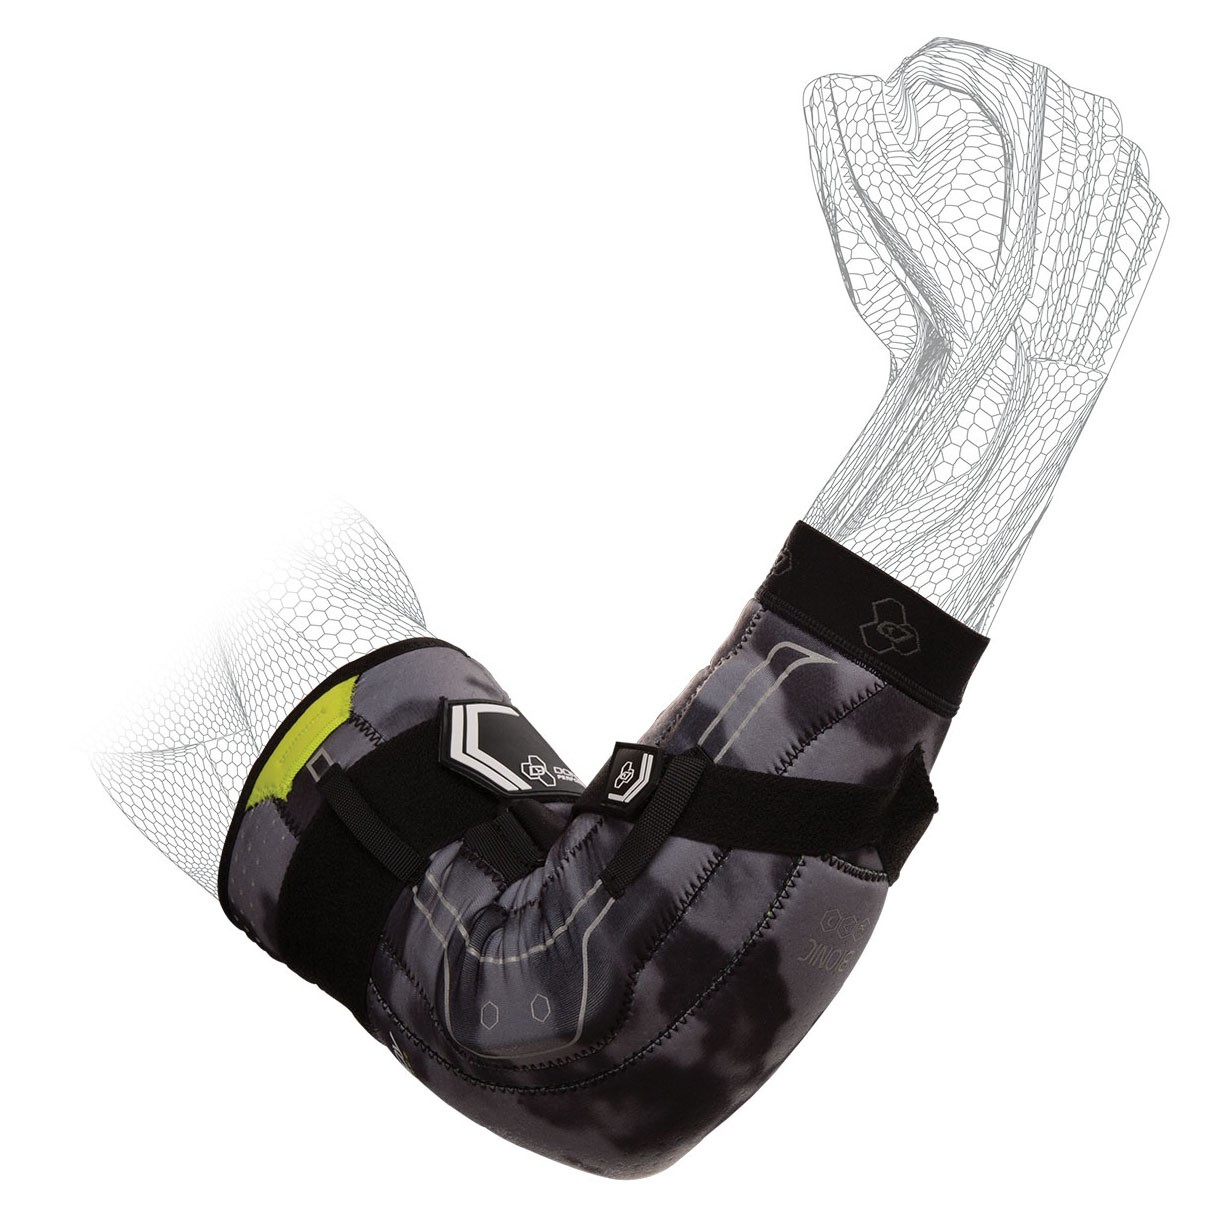 Donjoy Performance Bionic Elbow Brace Donjoyperformance